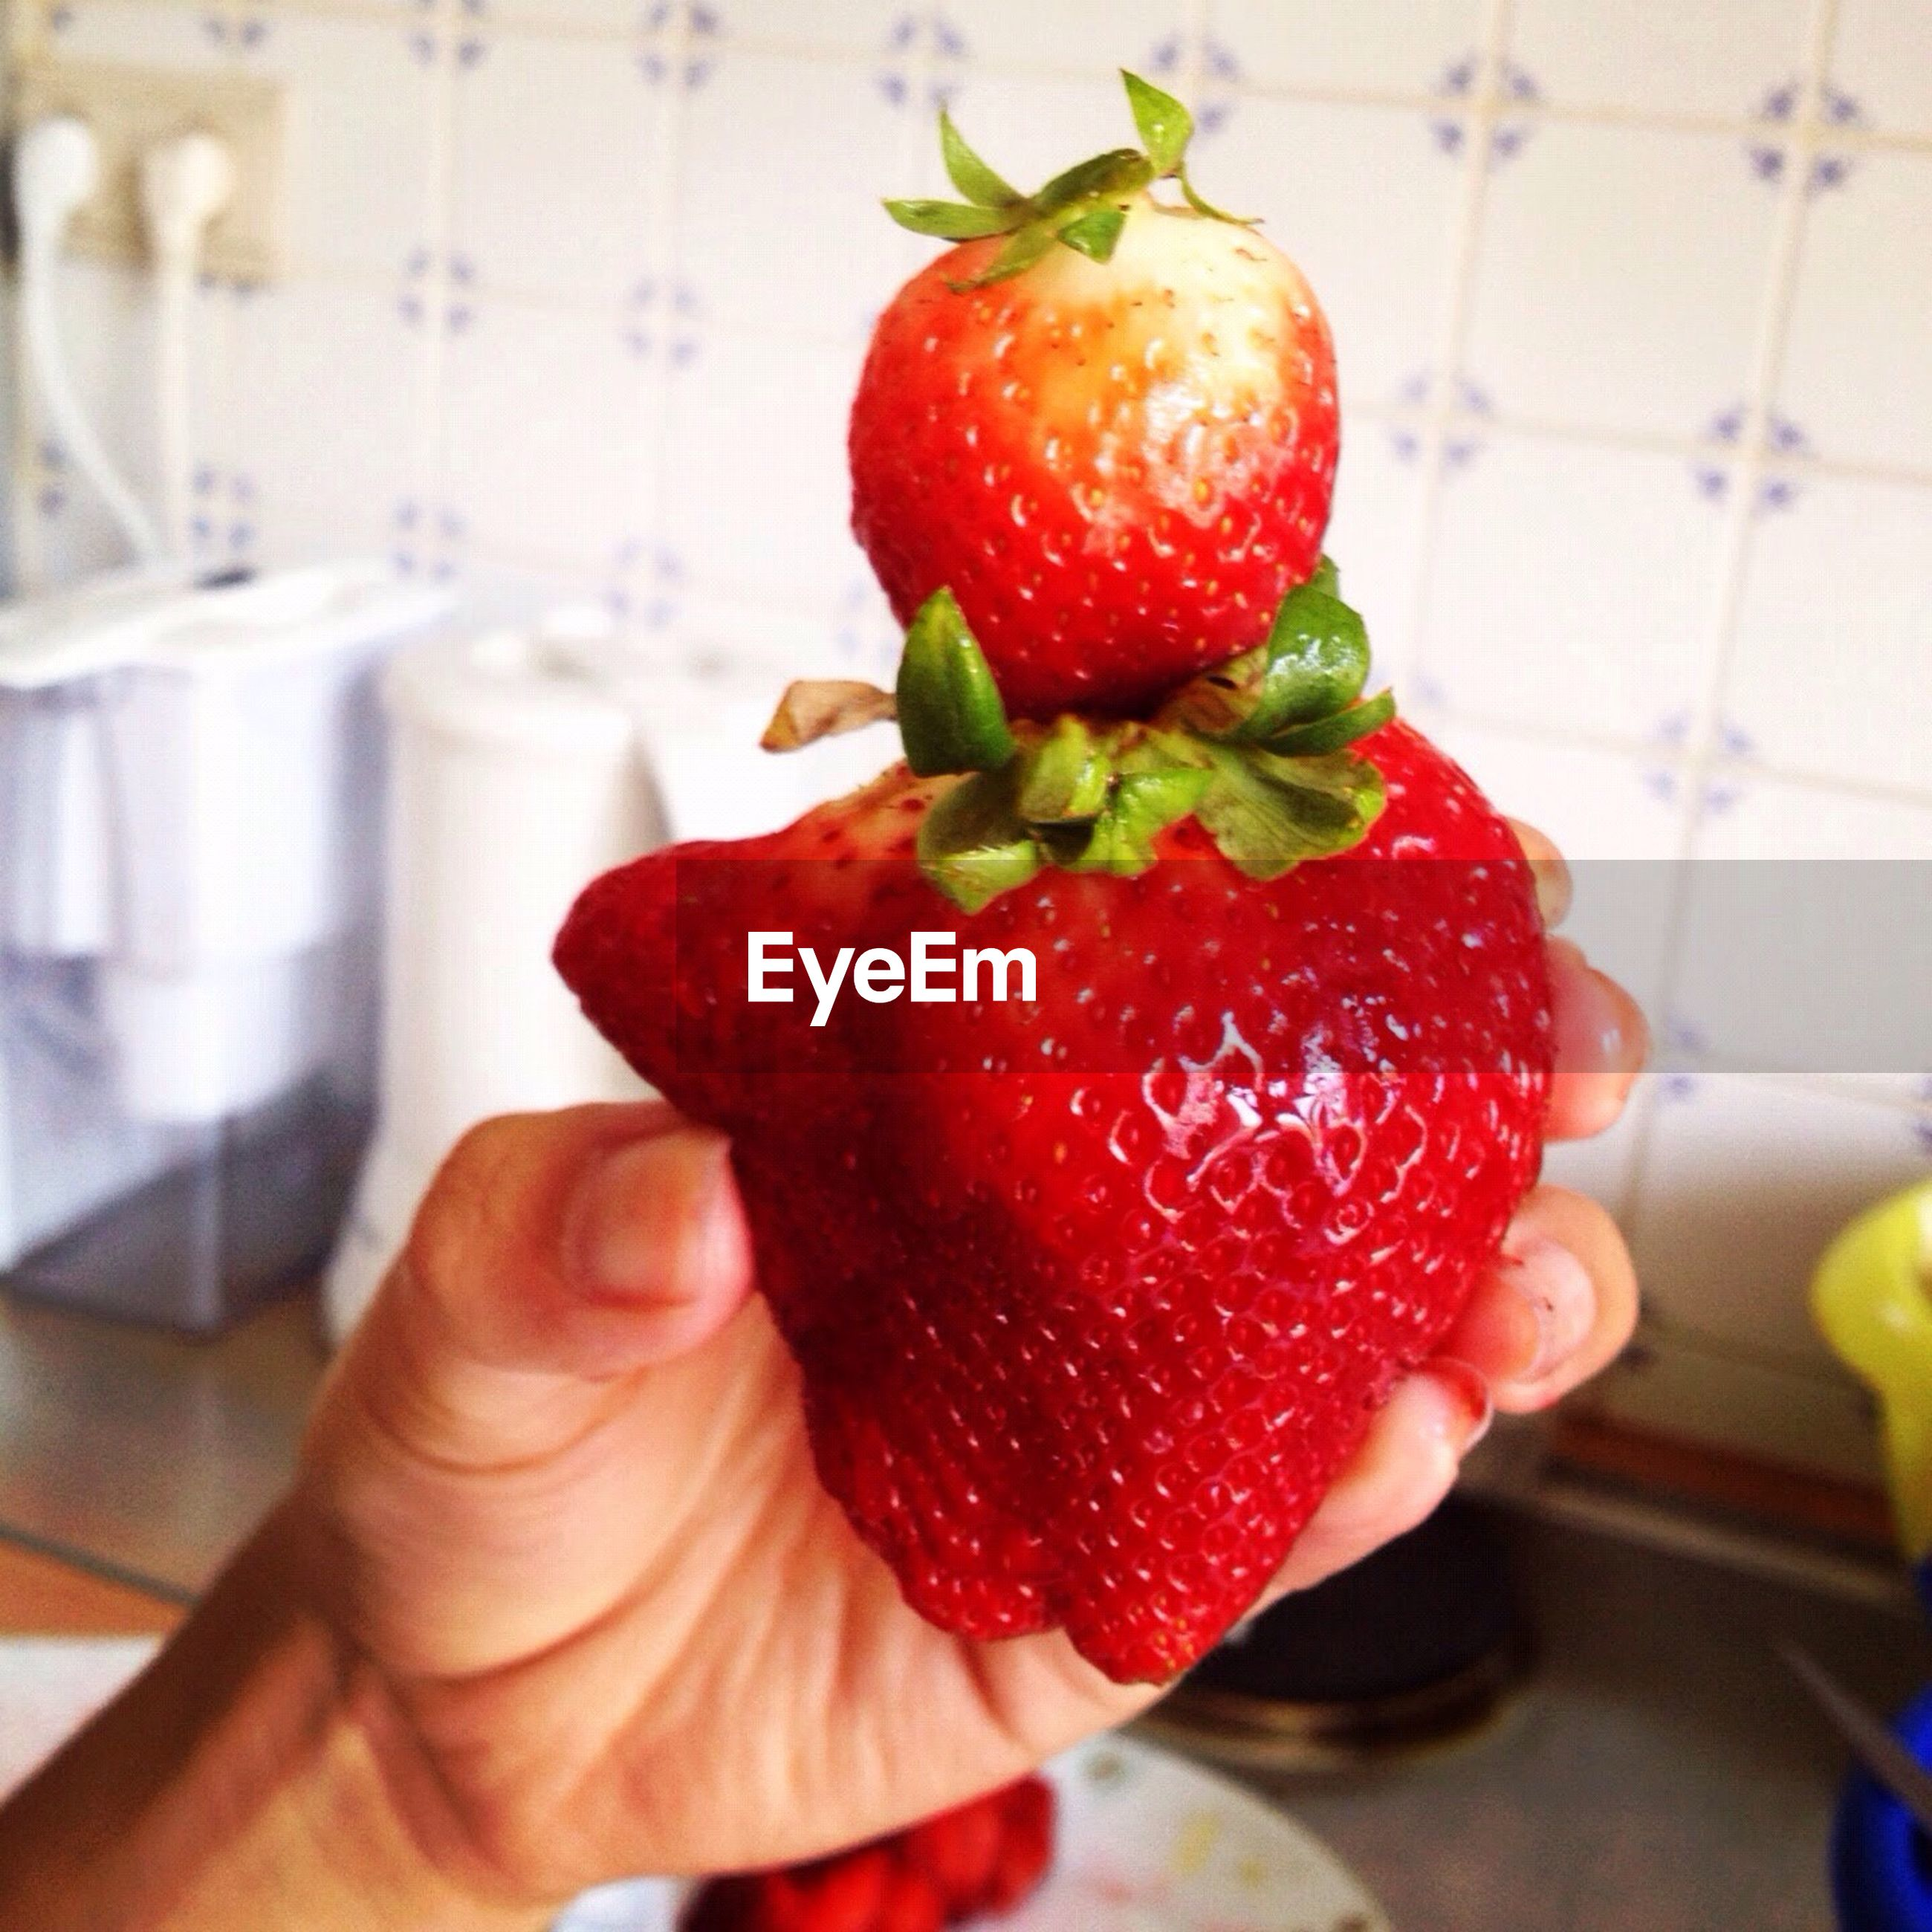 Cropped image of hand holding strawberries in bathroom